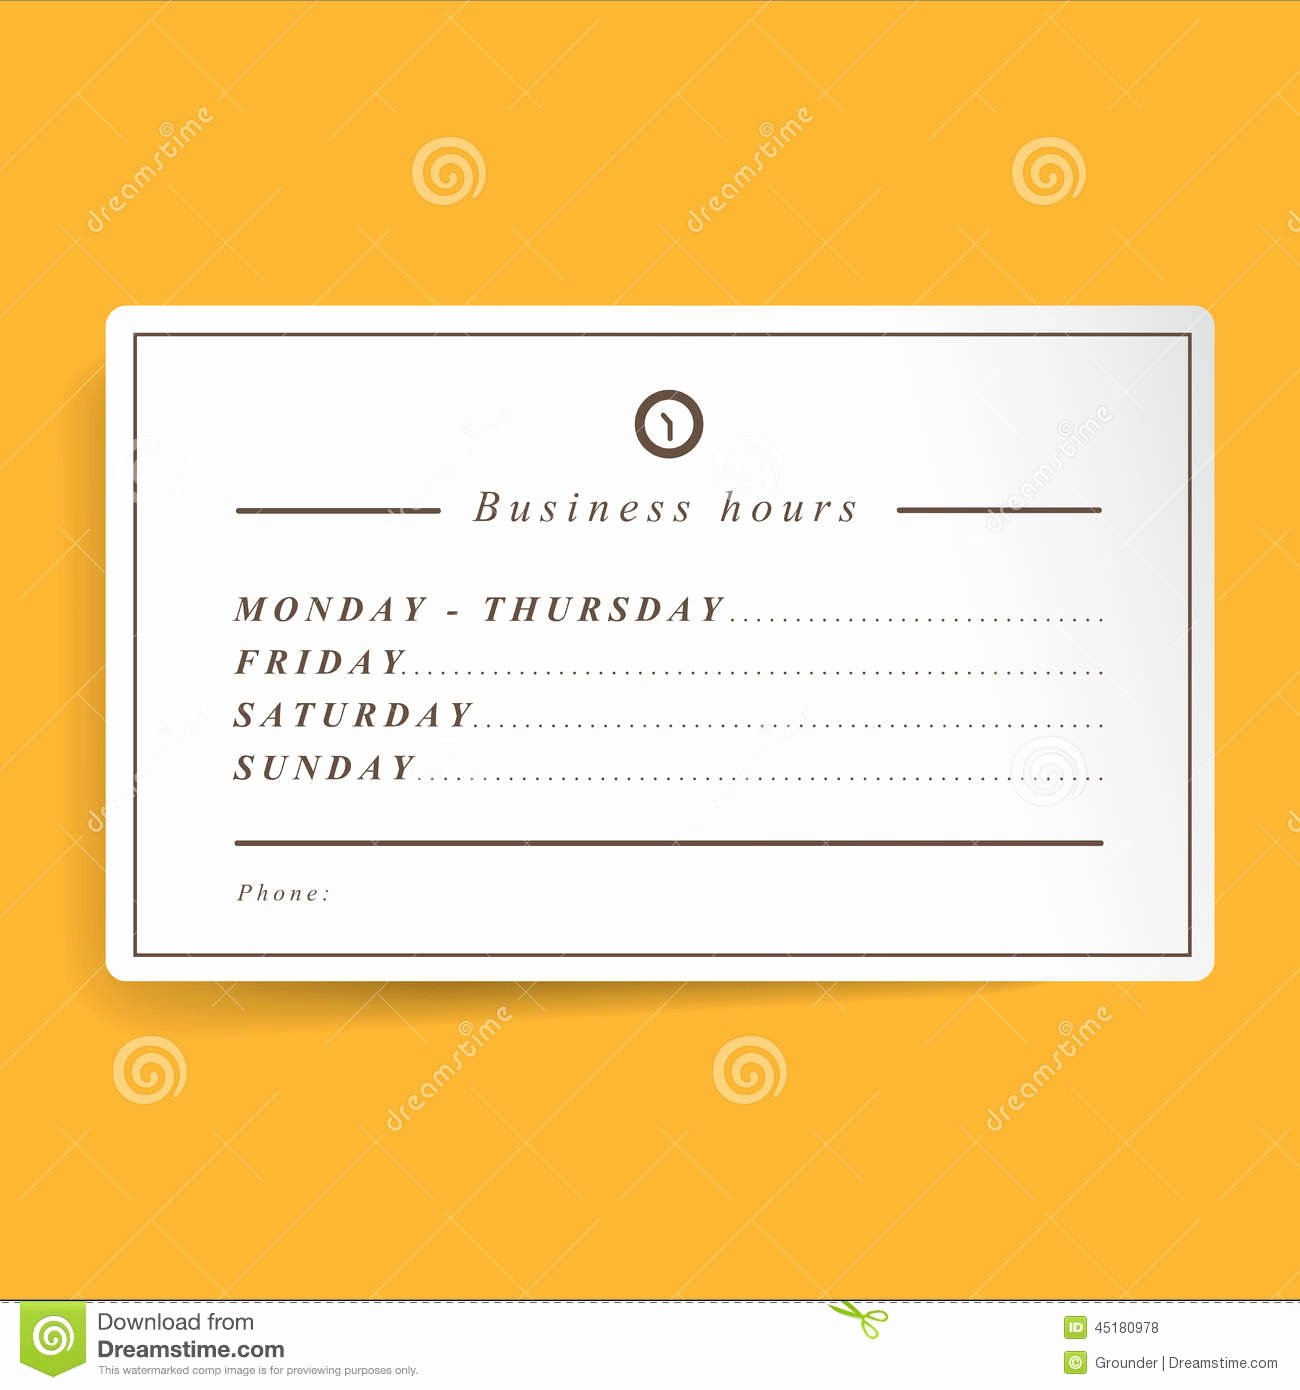 Business Hours Sign Template Awesome Business Hours Template Stock Illustration Image